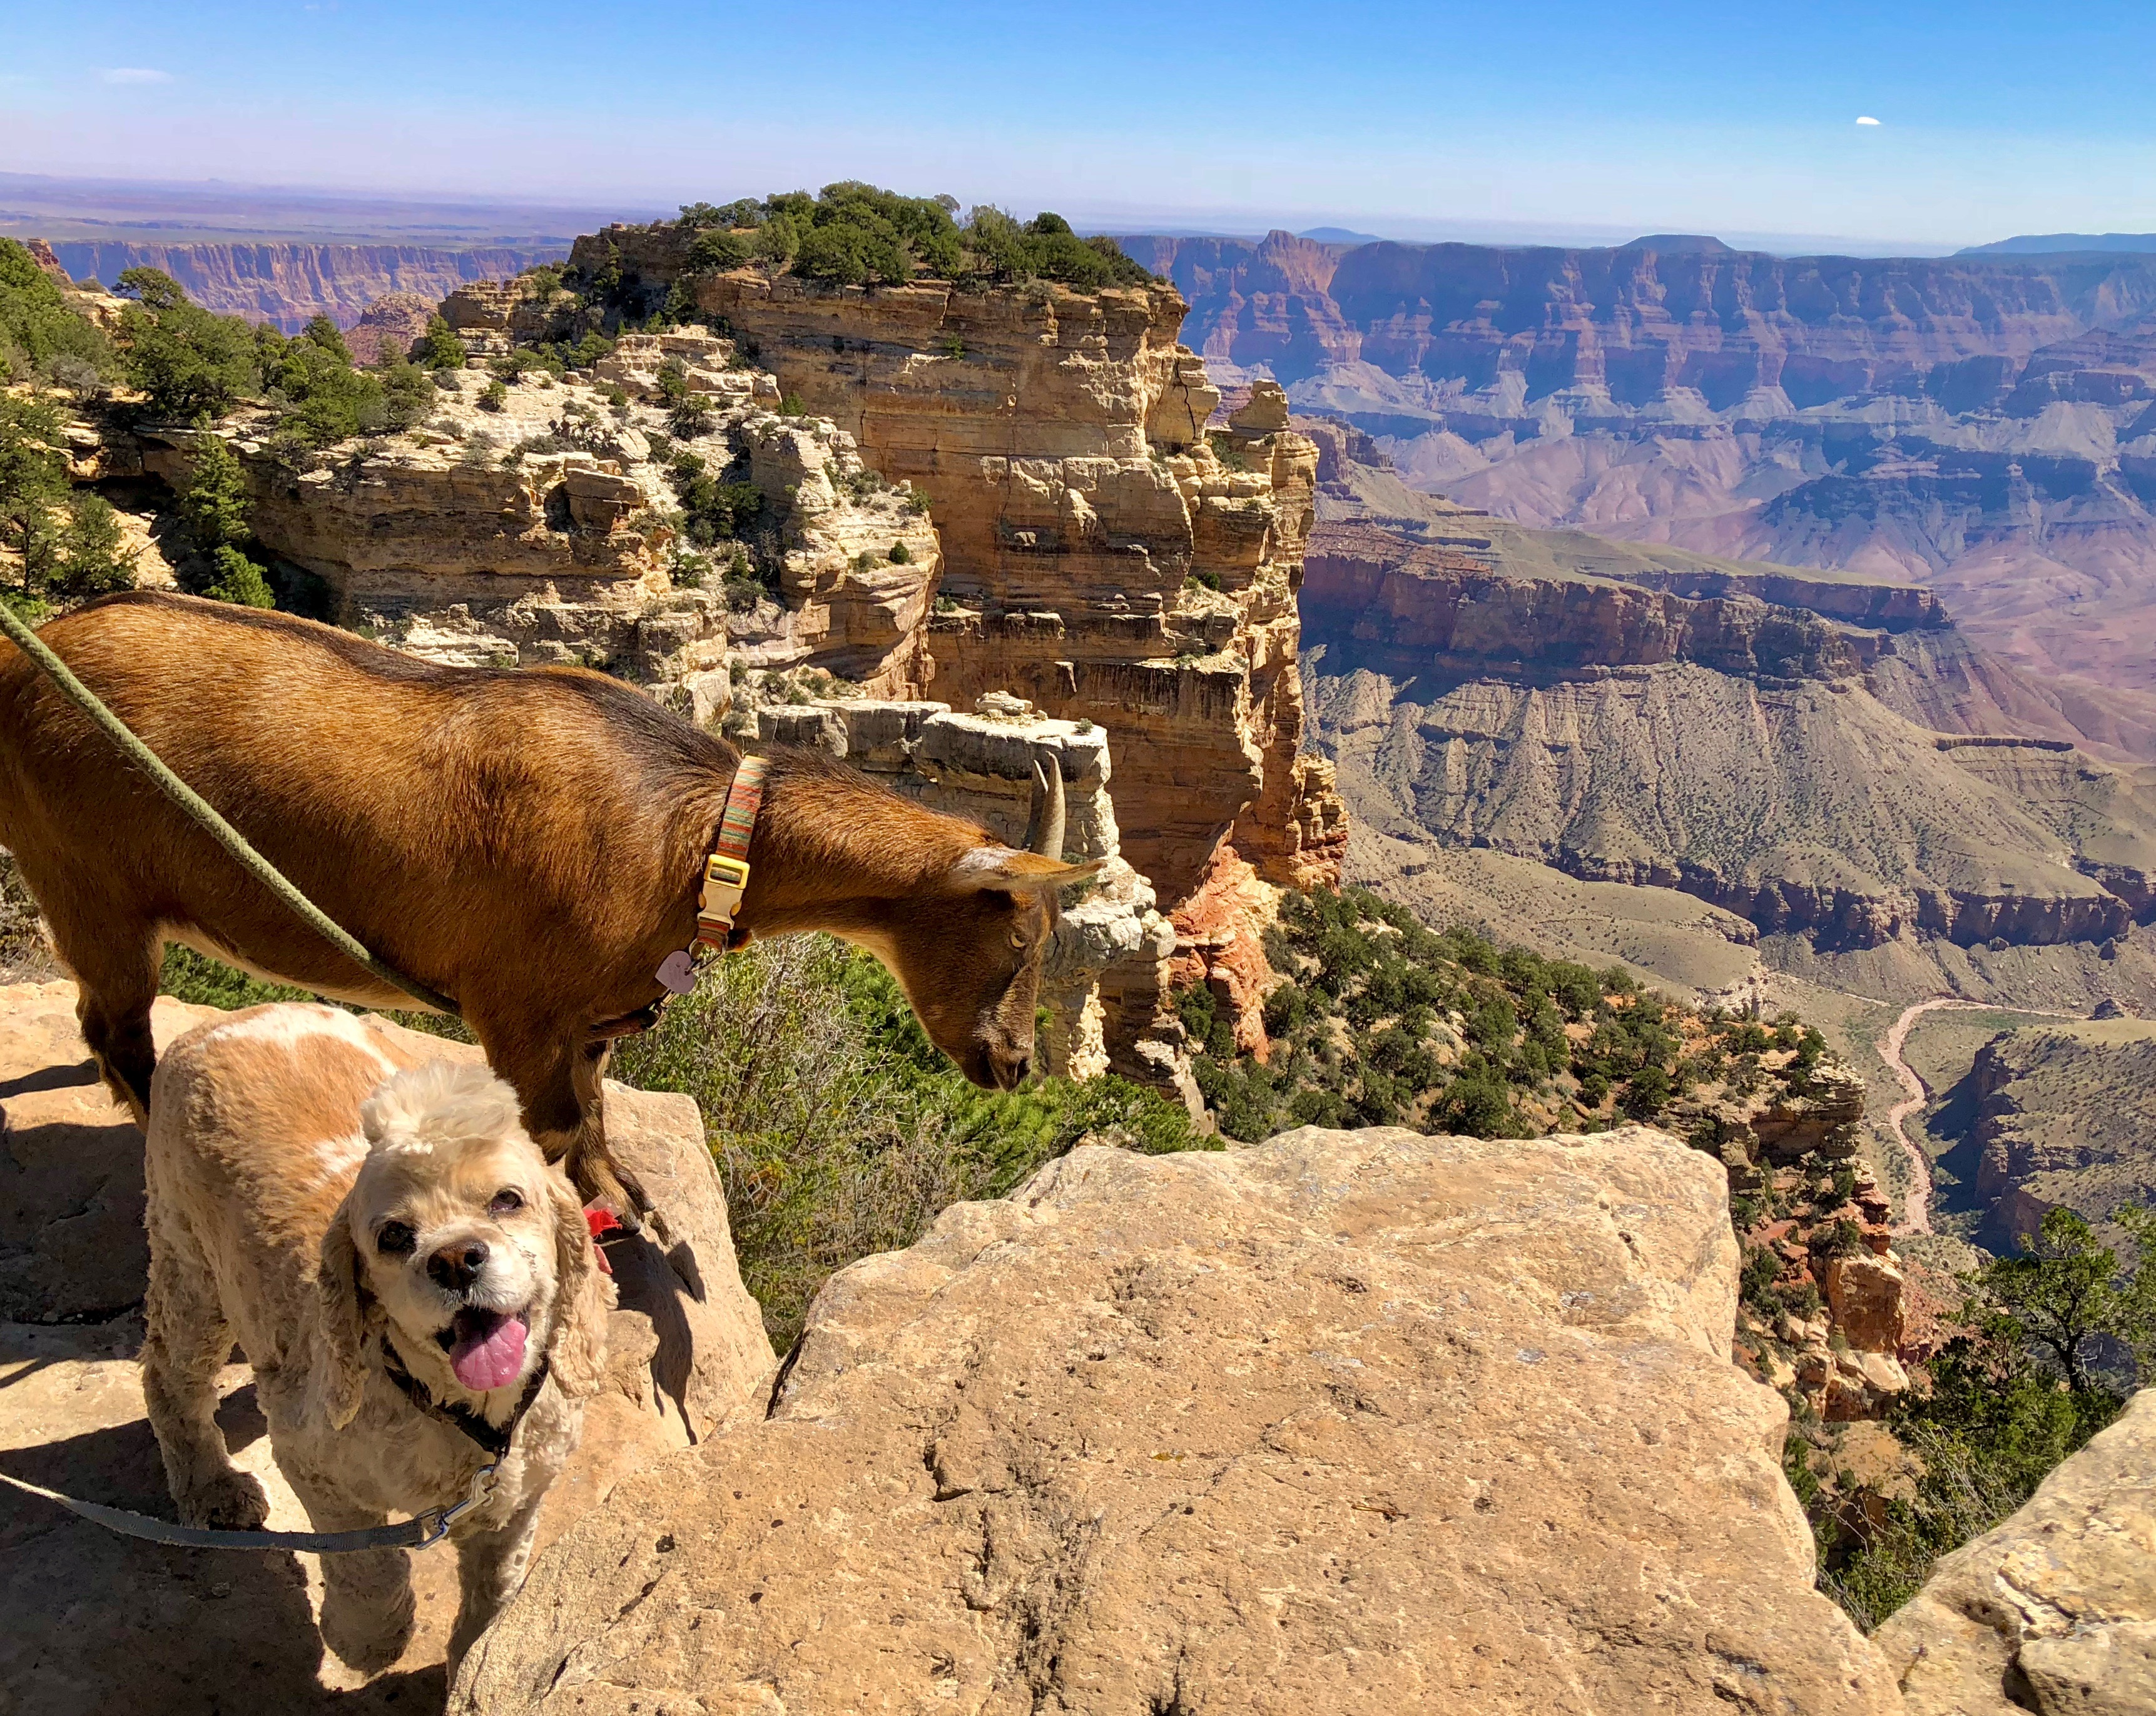 A dog and goat at the Grand Canyon